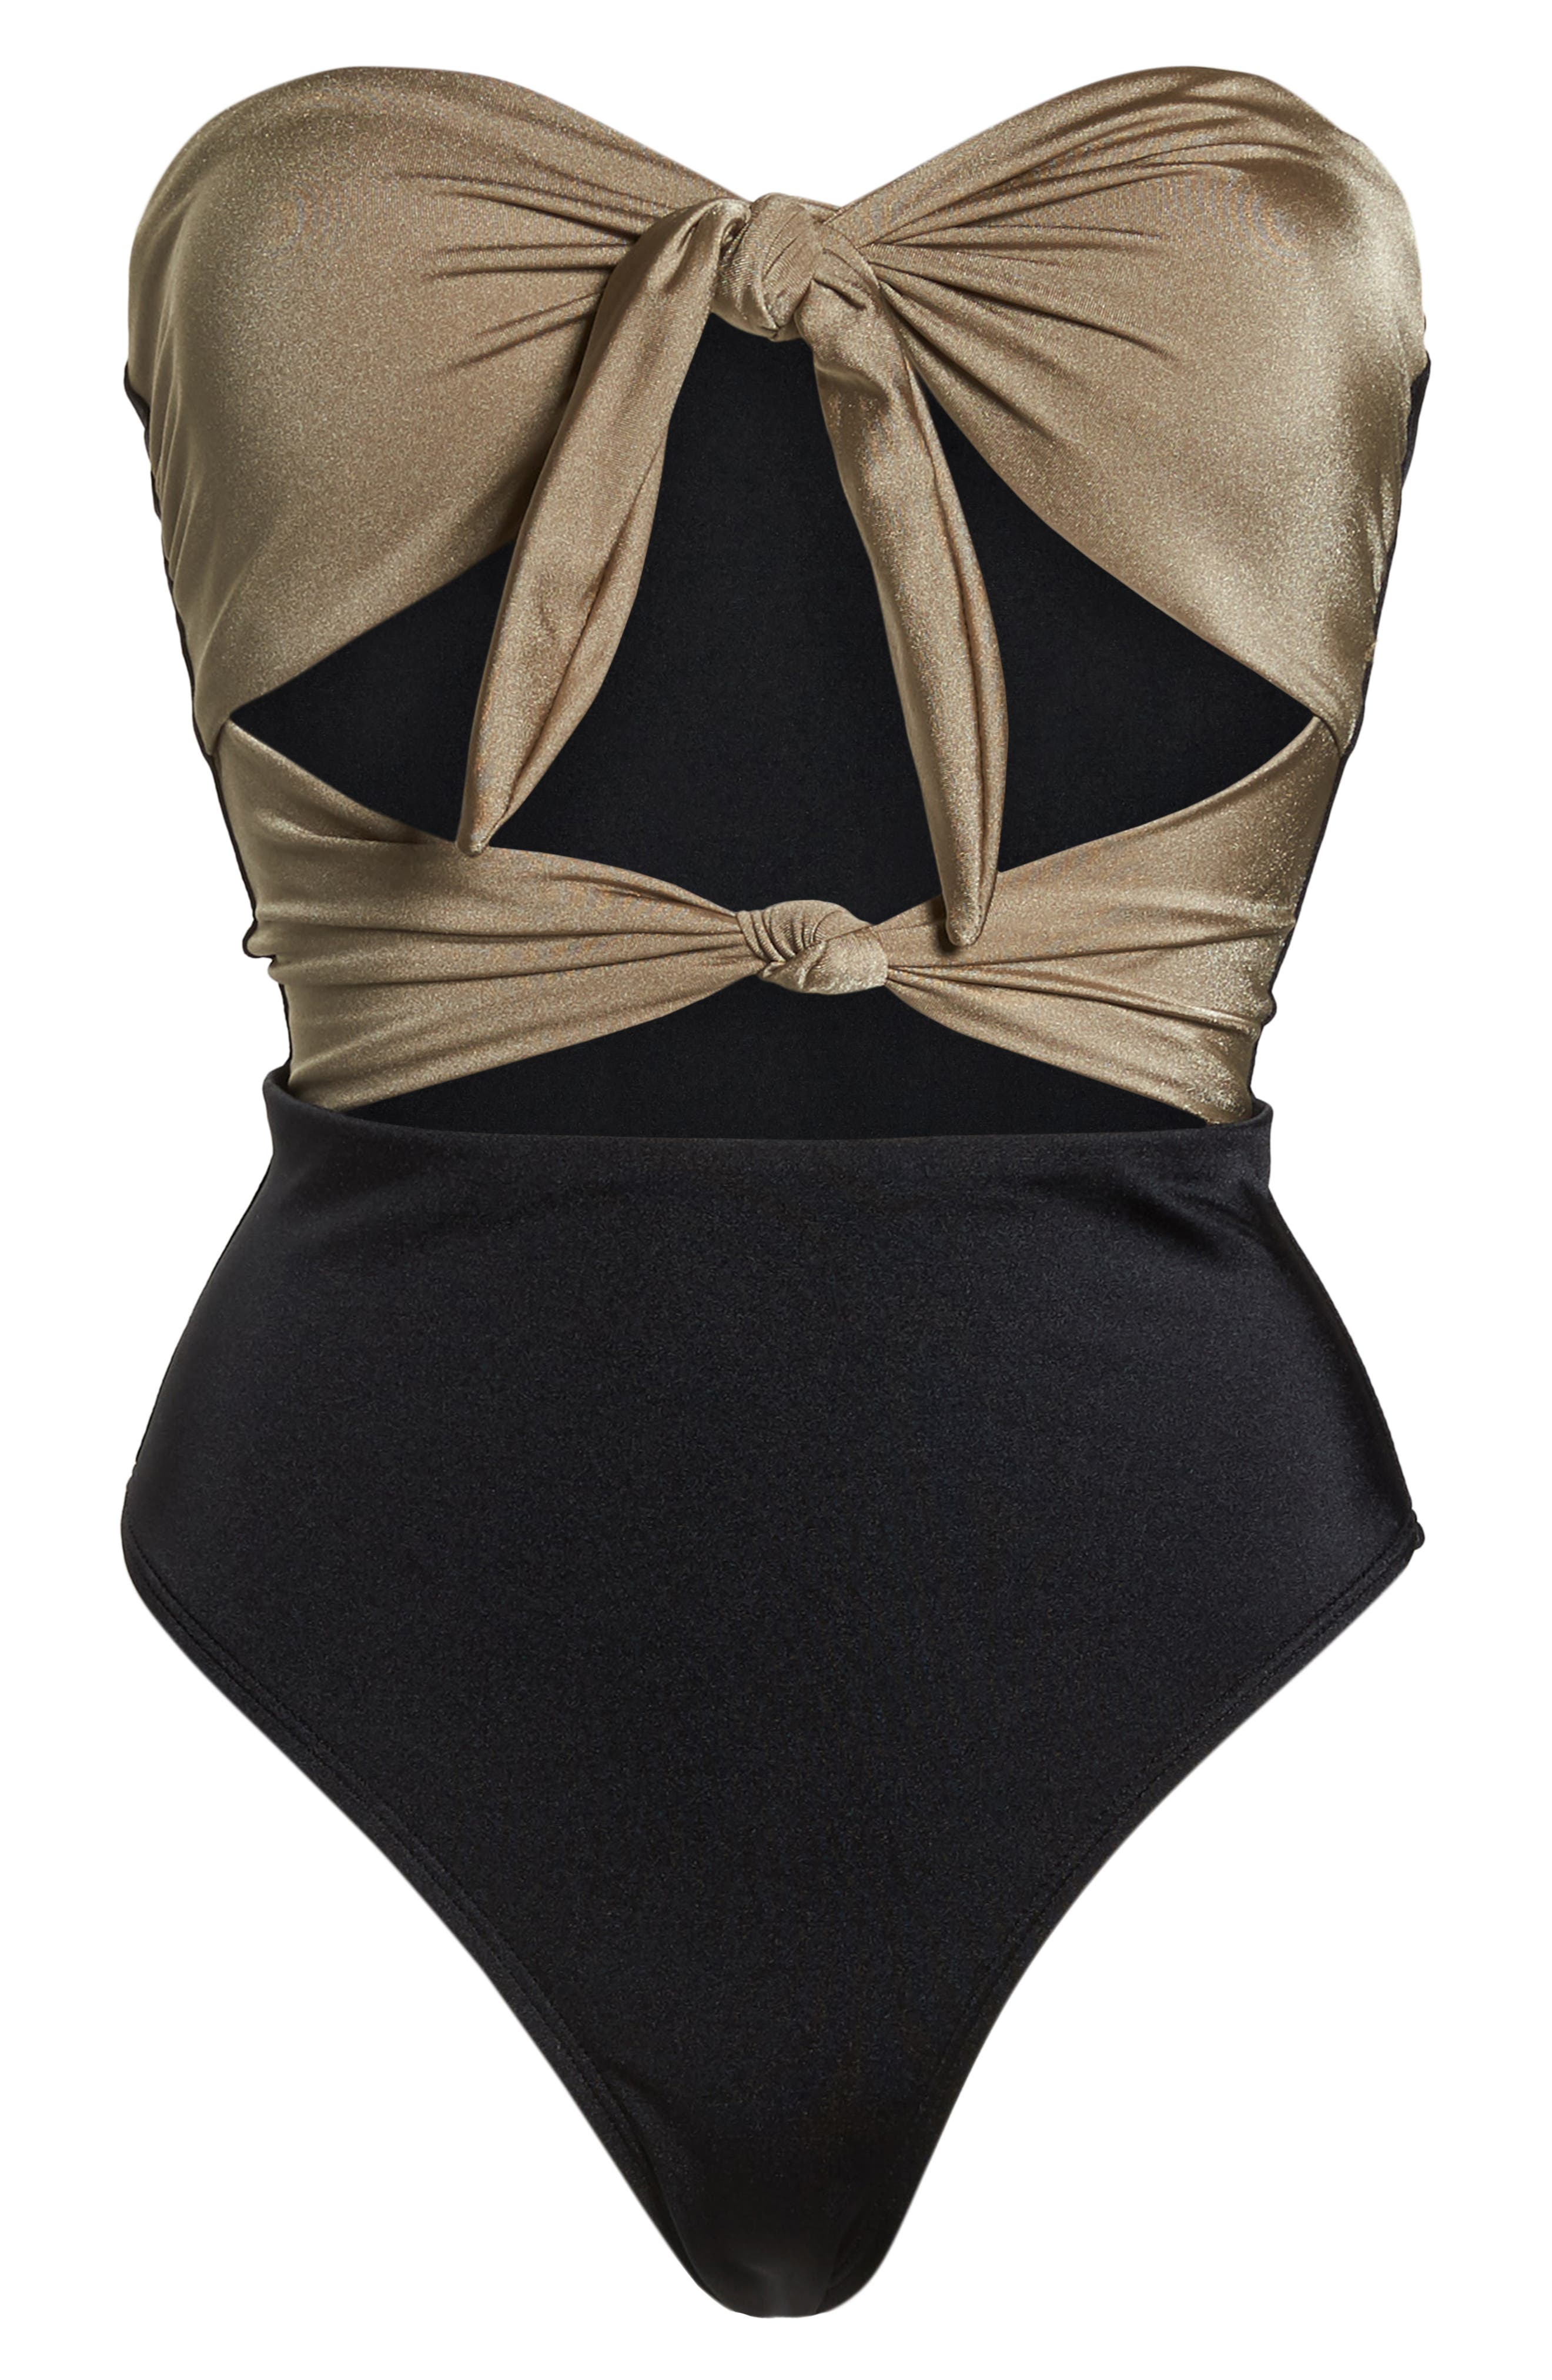 Glam Nights One-Piece Swimsuit,                             Alternate thumbnail 7, color,                             TAN MINK/ BLACK